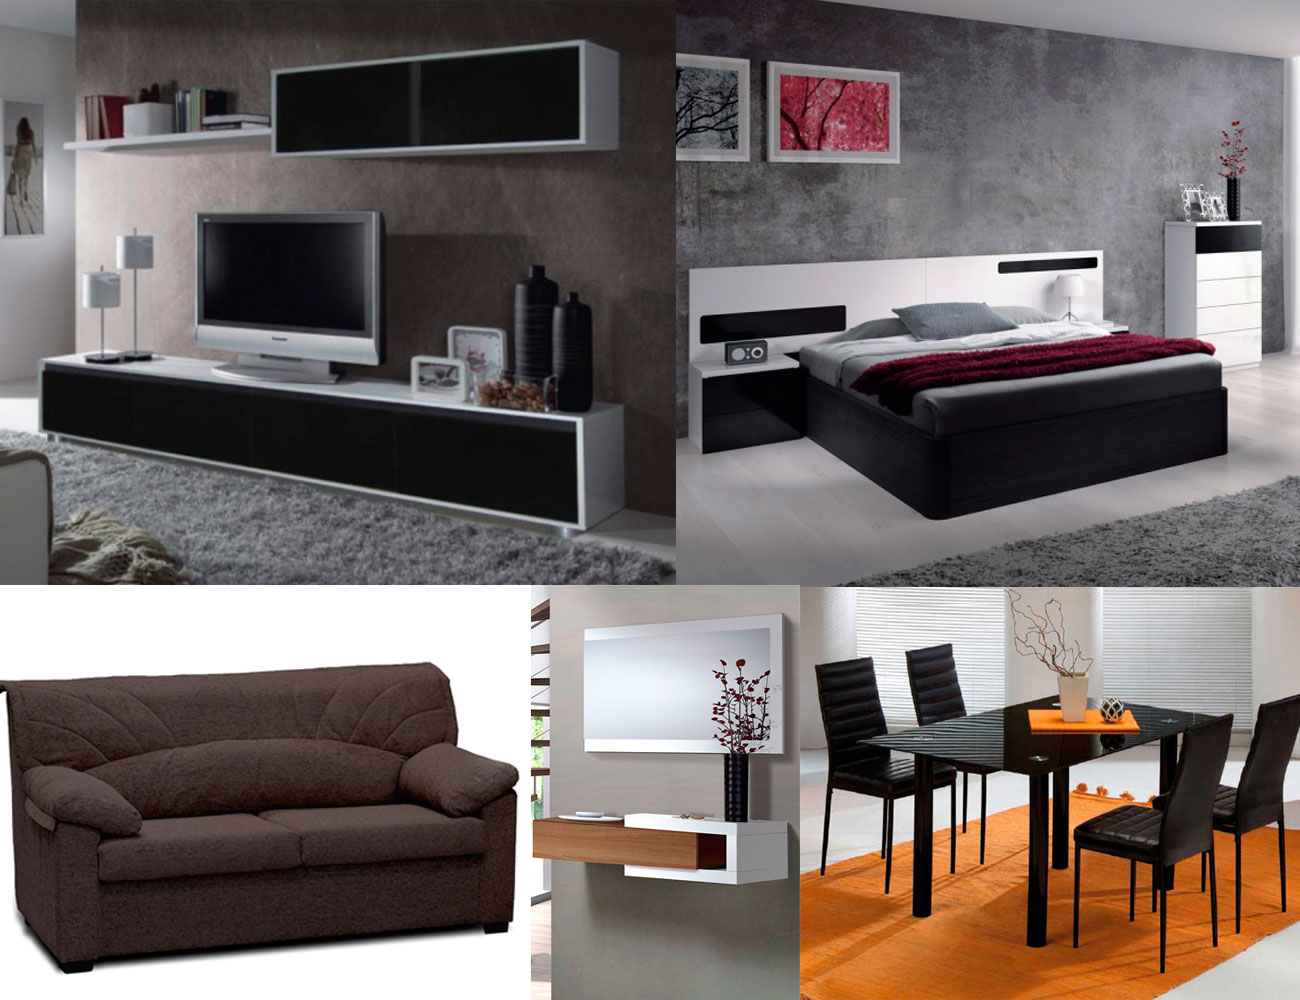 Muebles Piso Barato - Piso Completo Factory Del Mueble Utrera[mjhdah]http://www.ahorrototal.com/img/cms/Pisos%20completos/17165.jpg